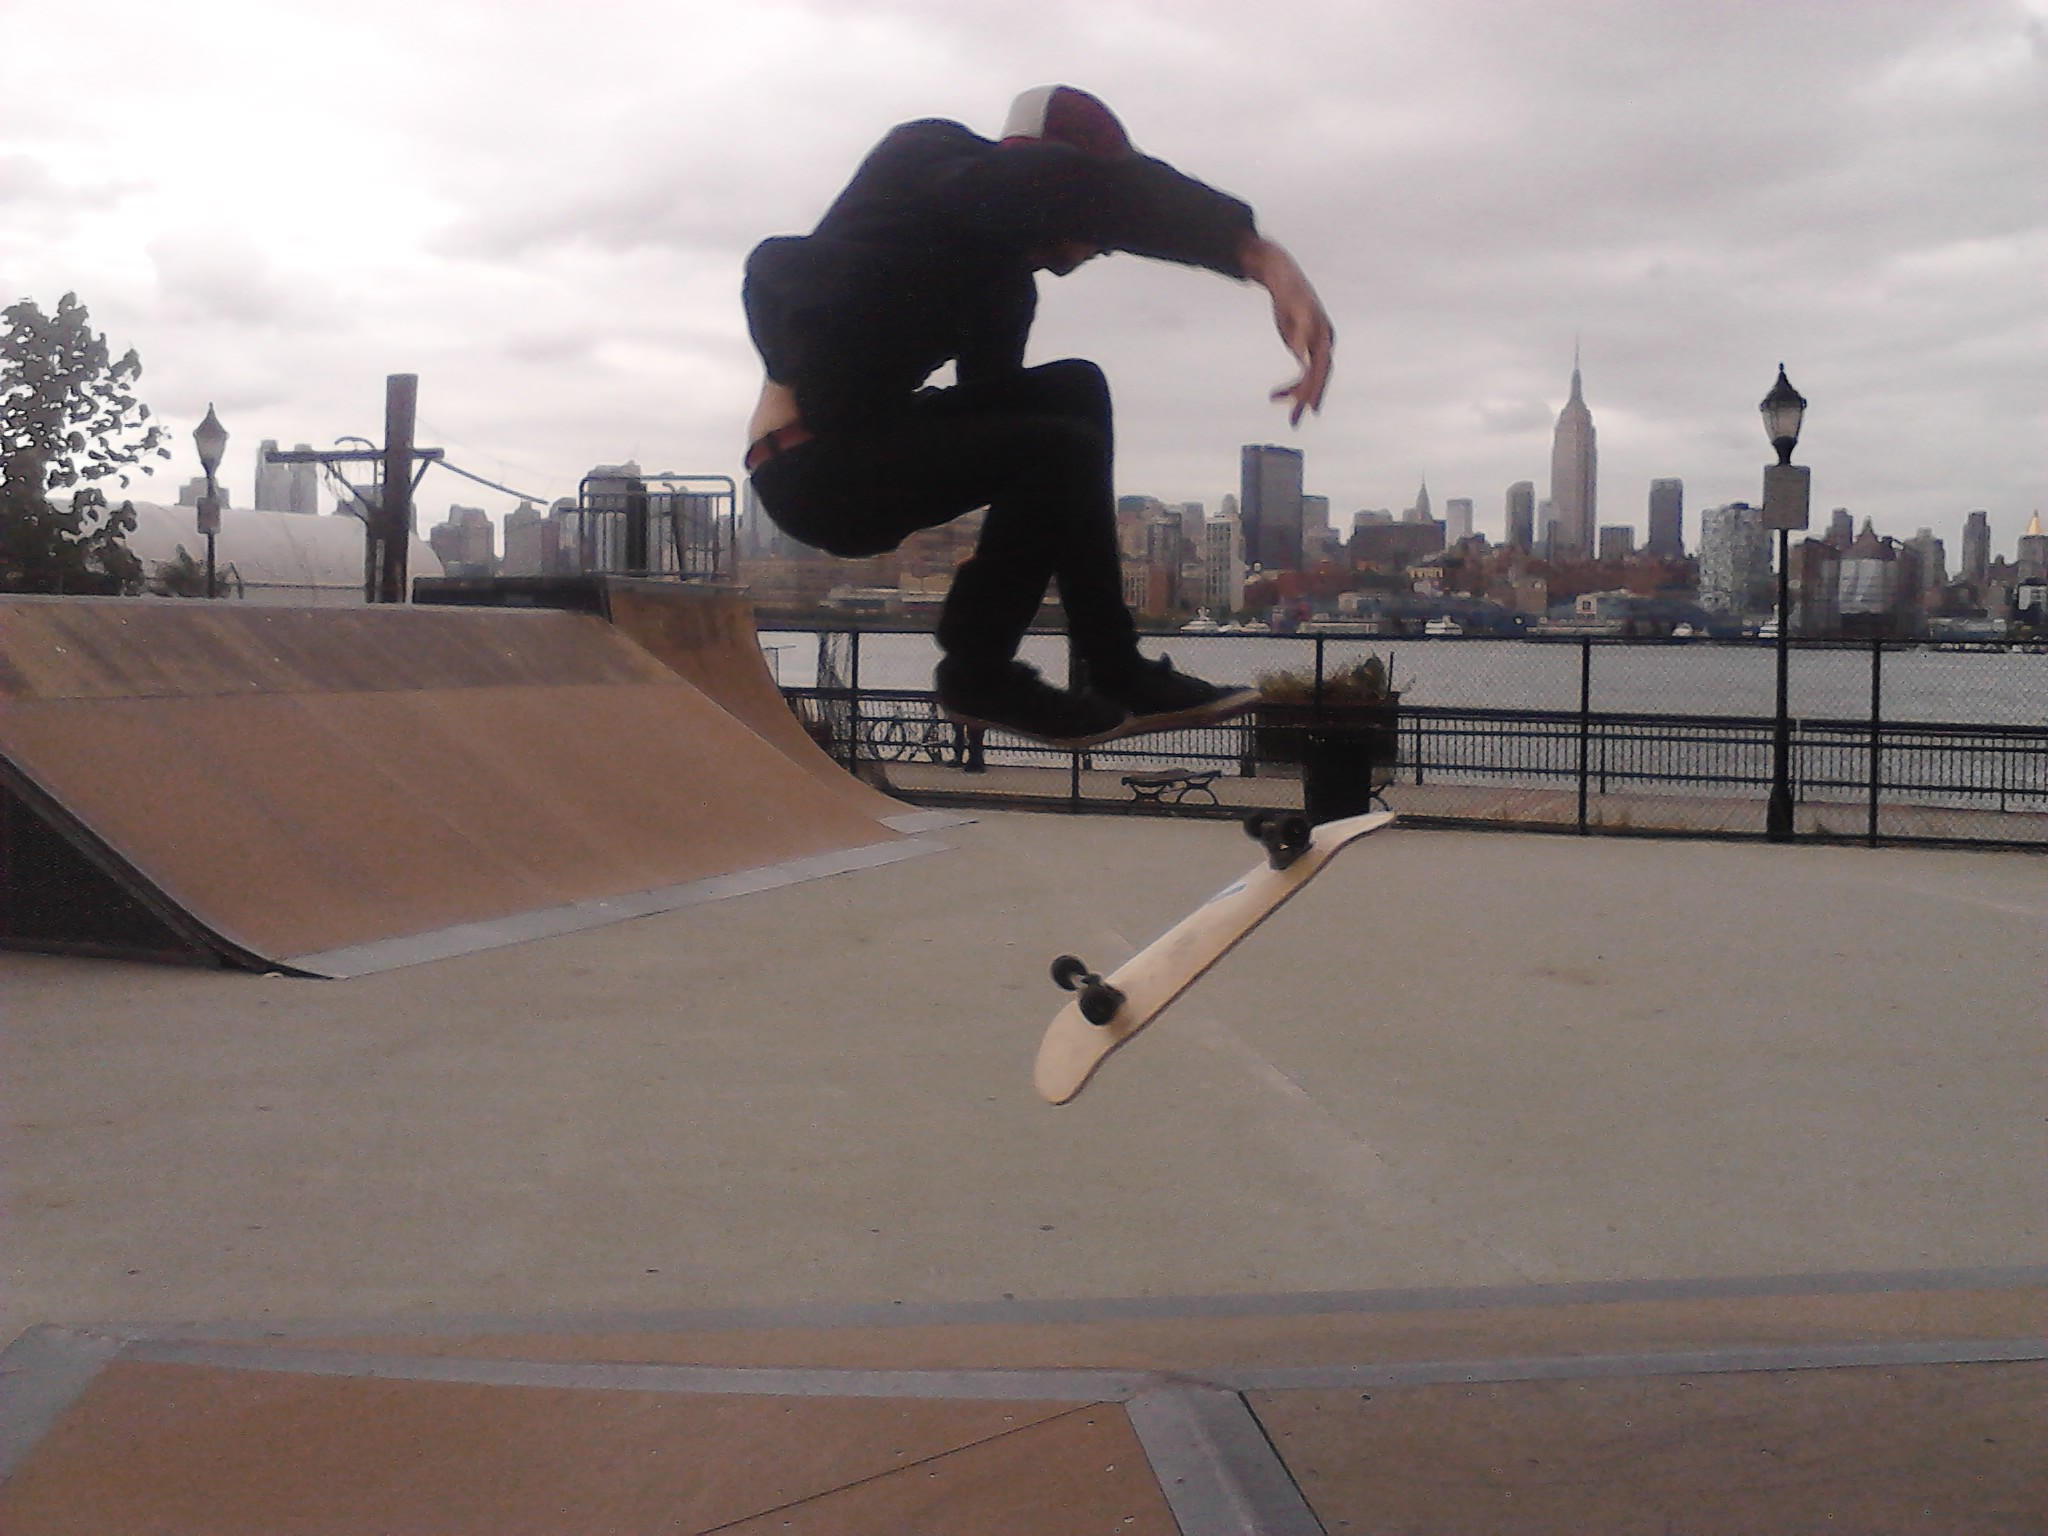 "Skateboard skate park in hoboken new jersey we found while skating 30 miles around the hudson river...if you like this check out our page athttp://www.facebook.com/thatsatrippadventures and ""like"" and share with friends!!!"